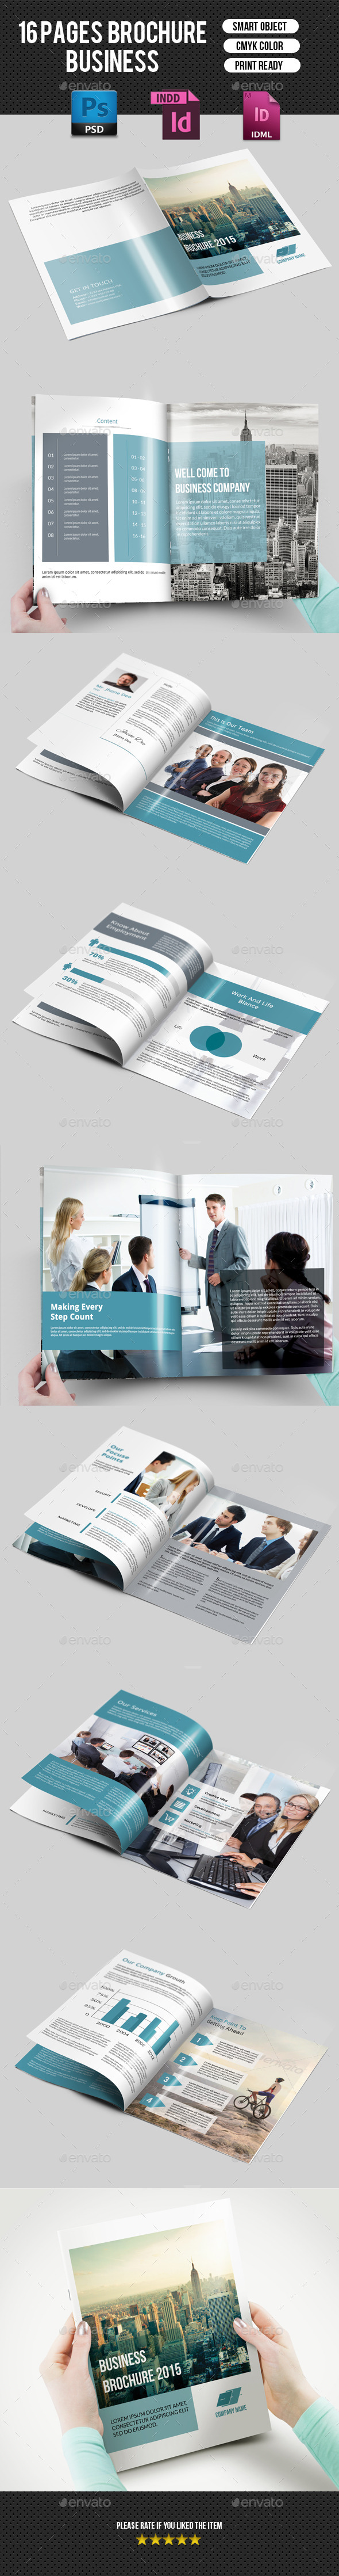 GraphicRiver Corporate Bi-fold Brochure-V130 8847537